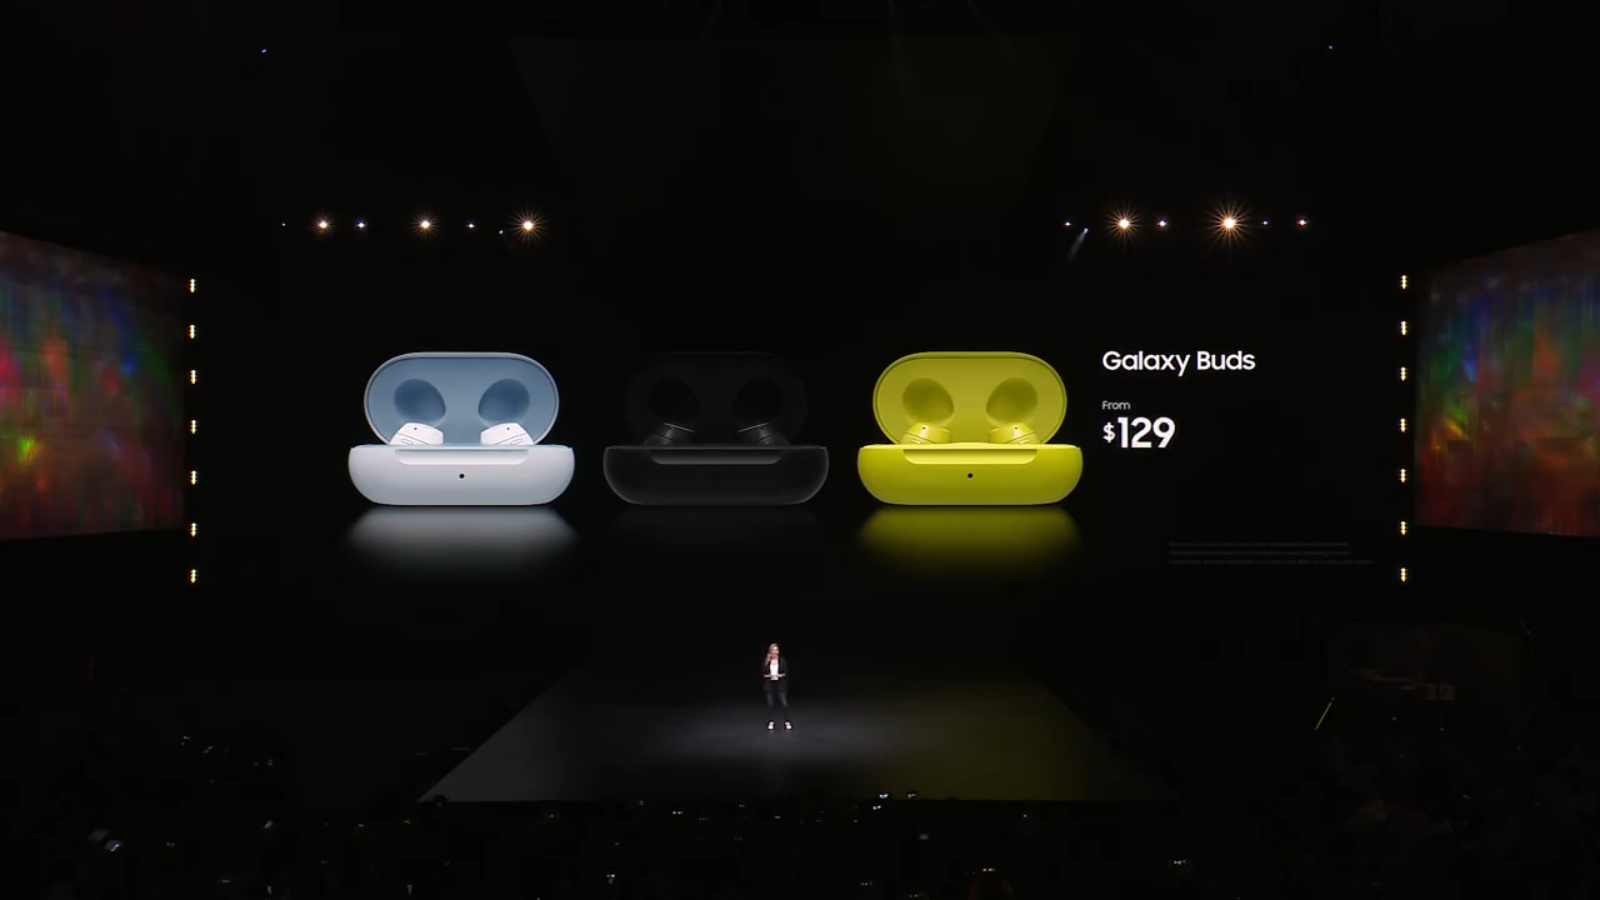 Samsungs New Galaxy Buds Can Be Wirelessly Charged Using The